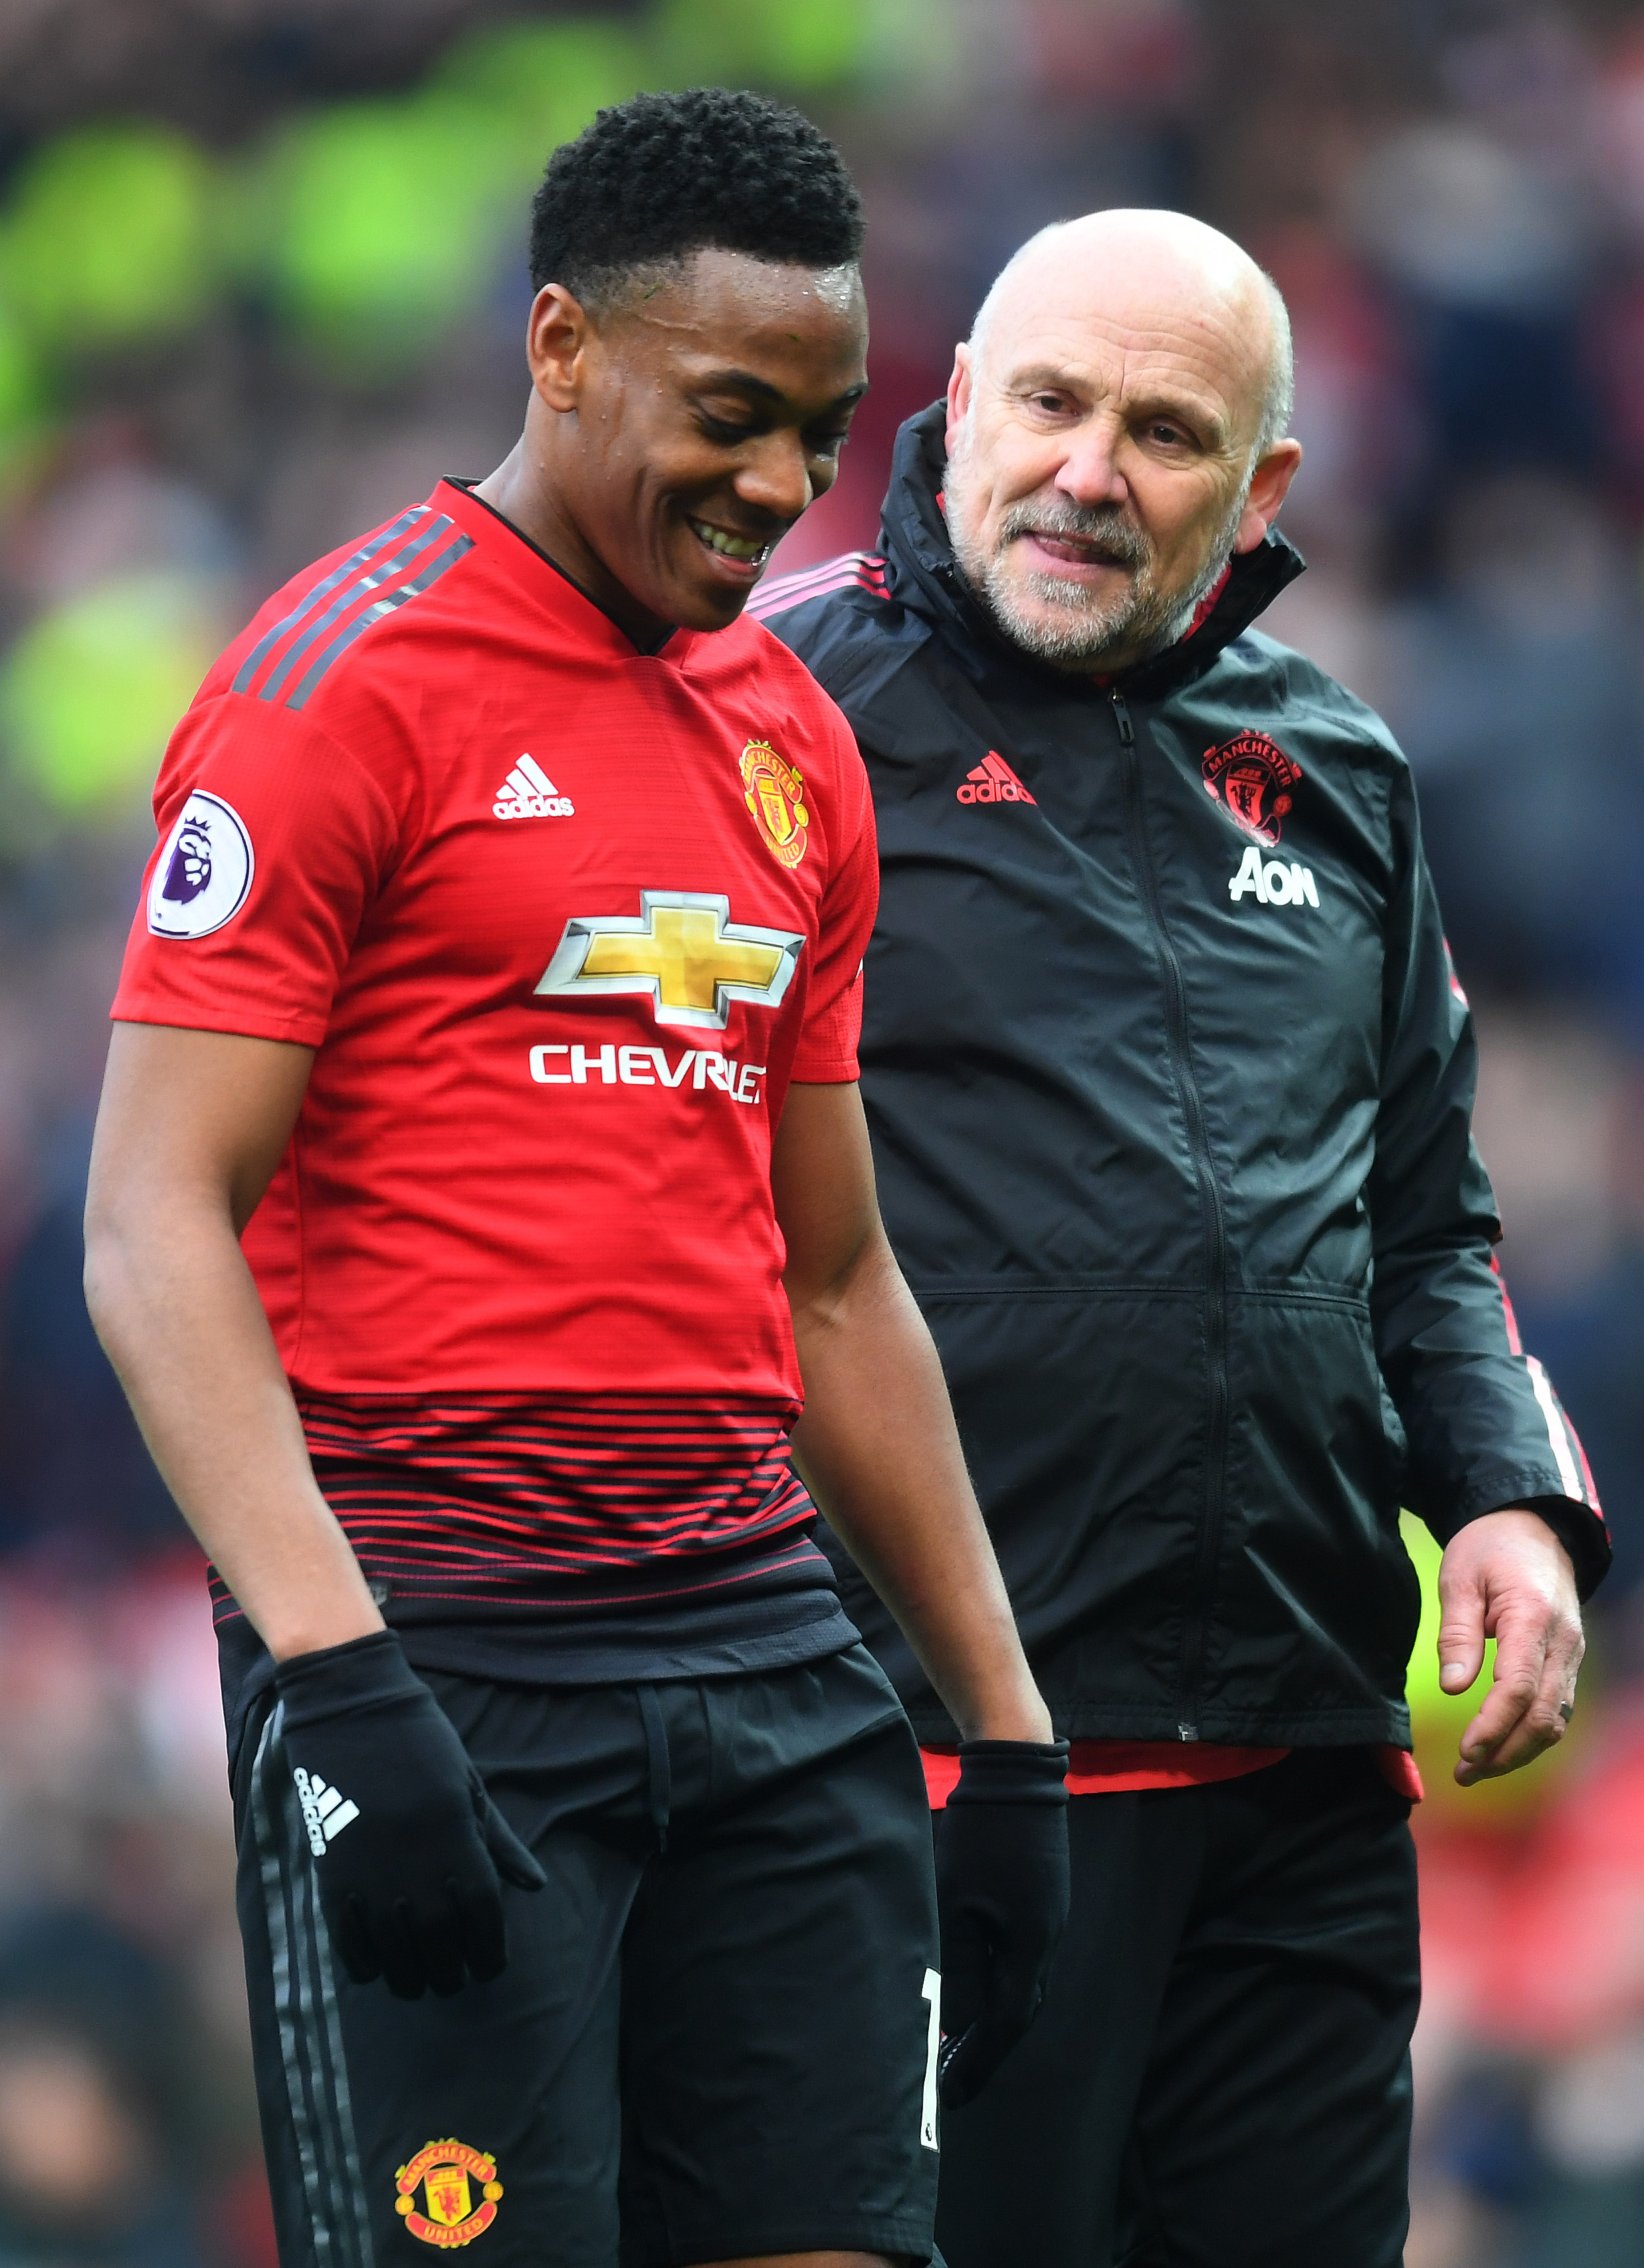 Manchester United want Mike Phelan to be their technical director